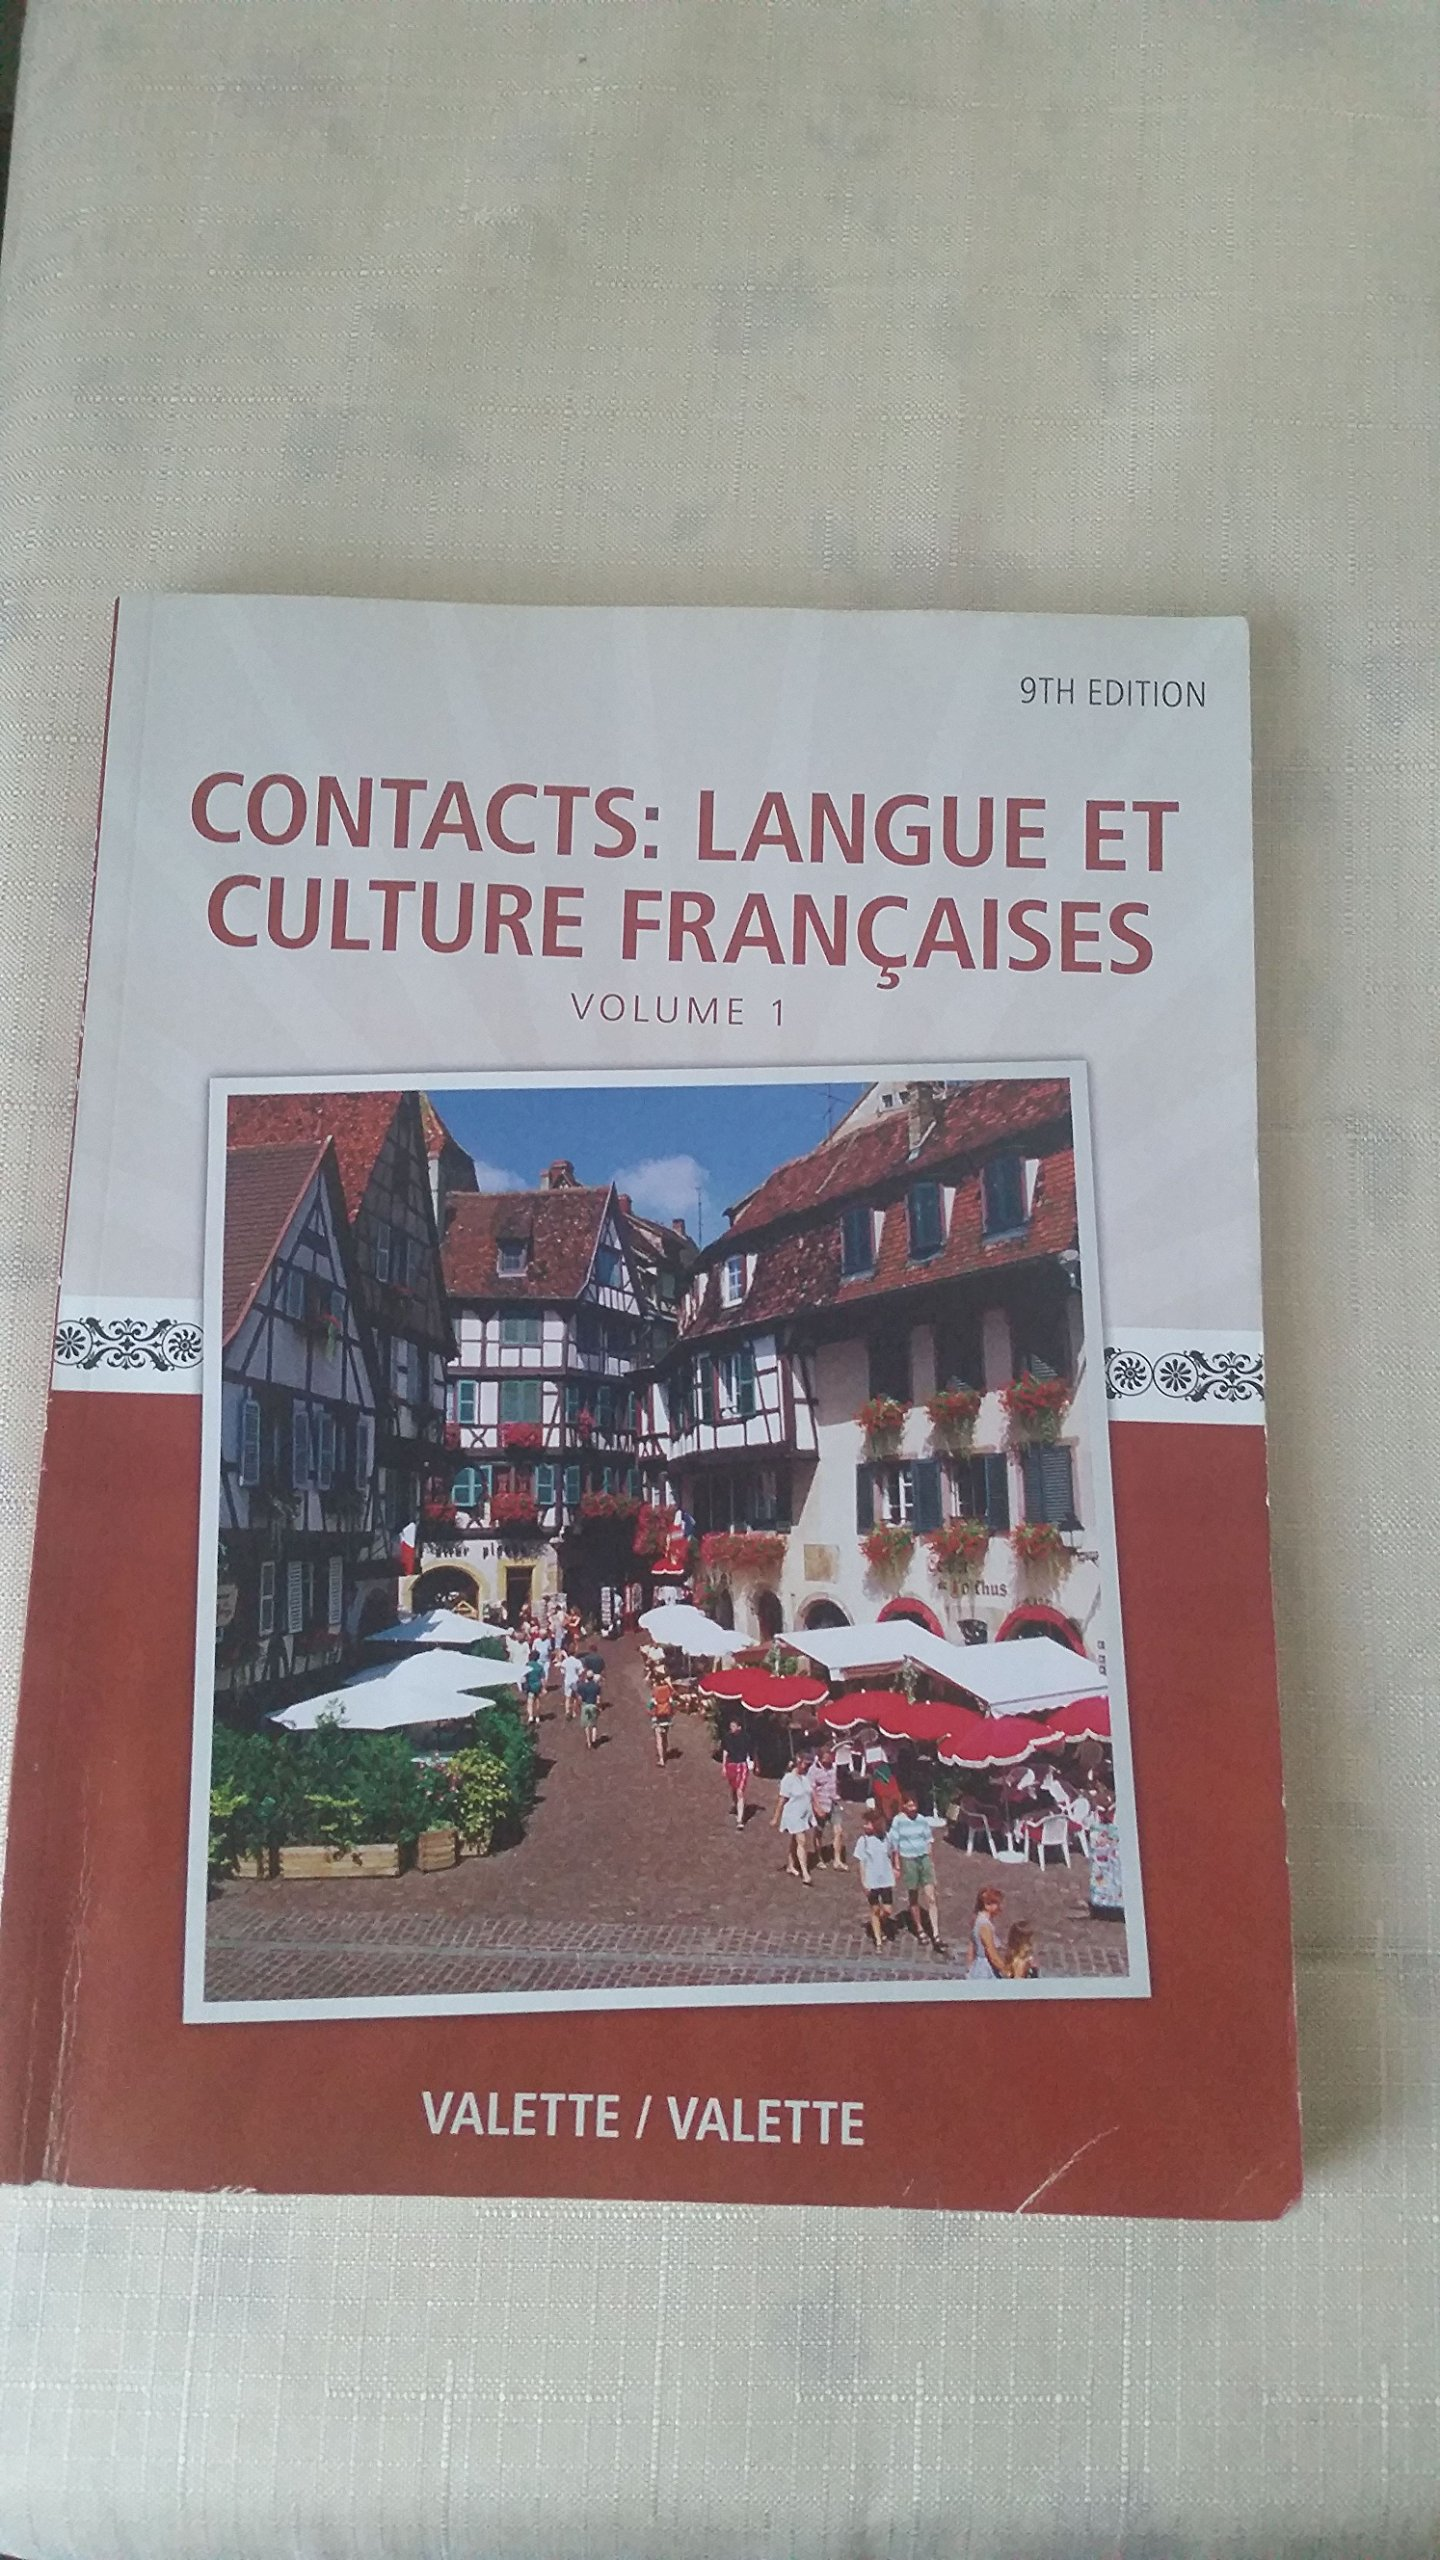 CONTACTS VALETTE PDF 9TH EBOOK DOWNLOAD